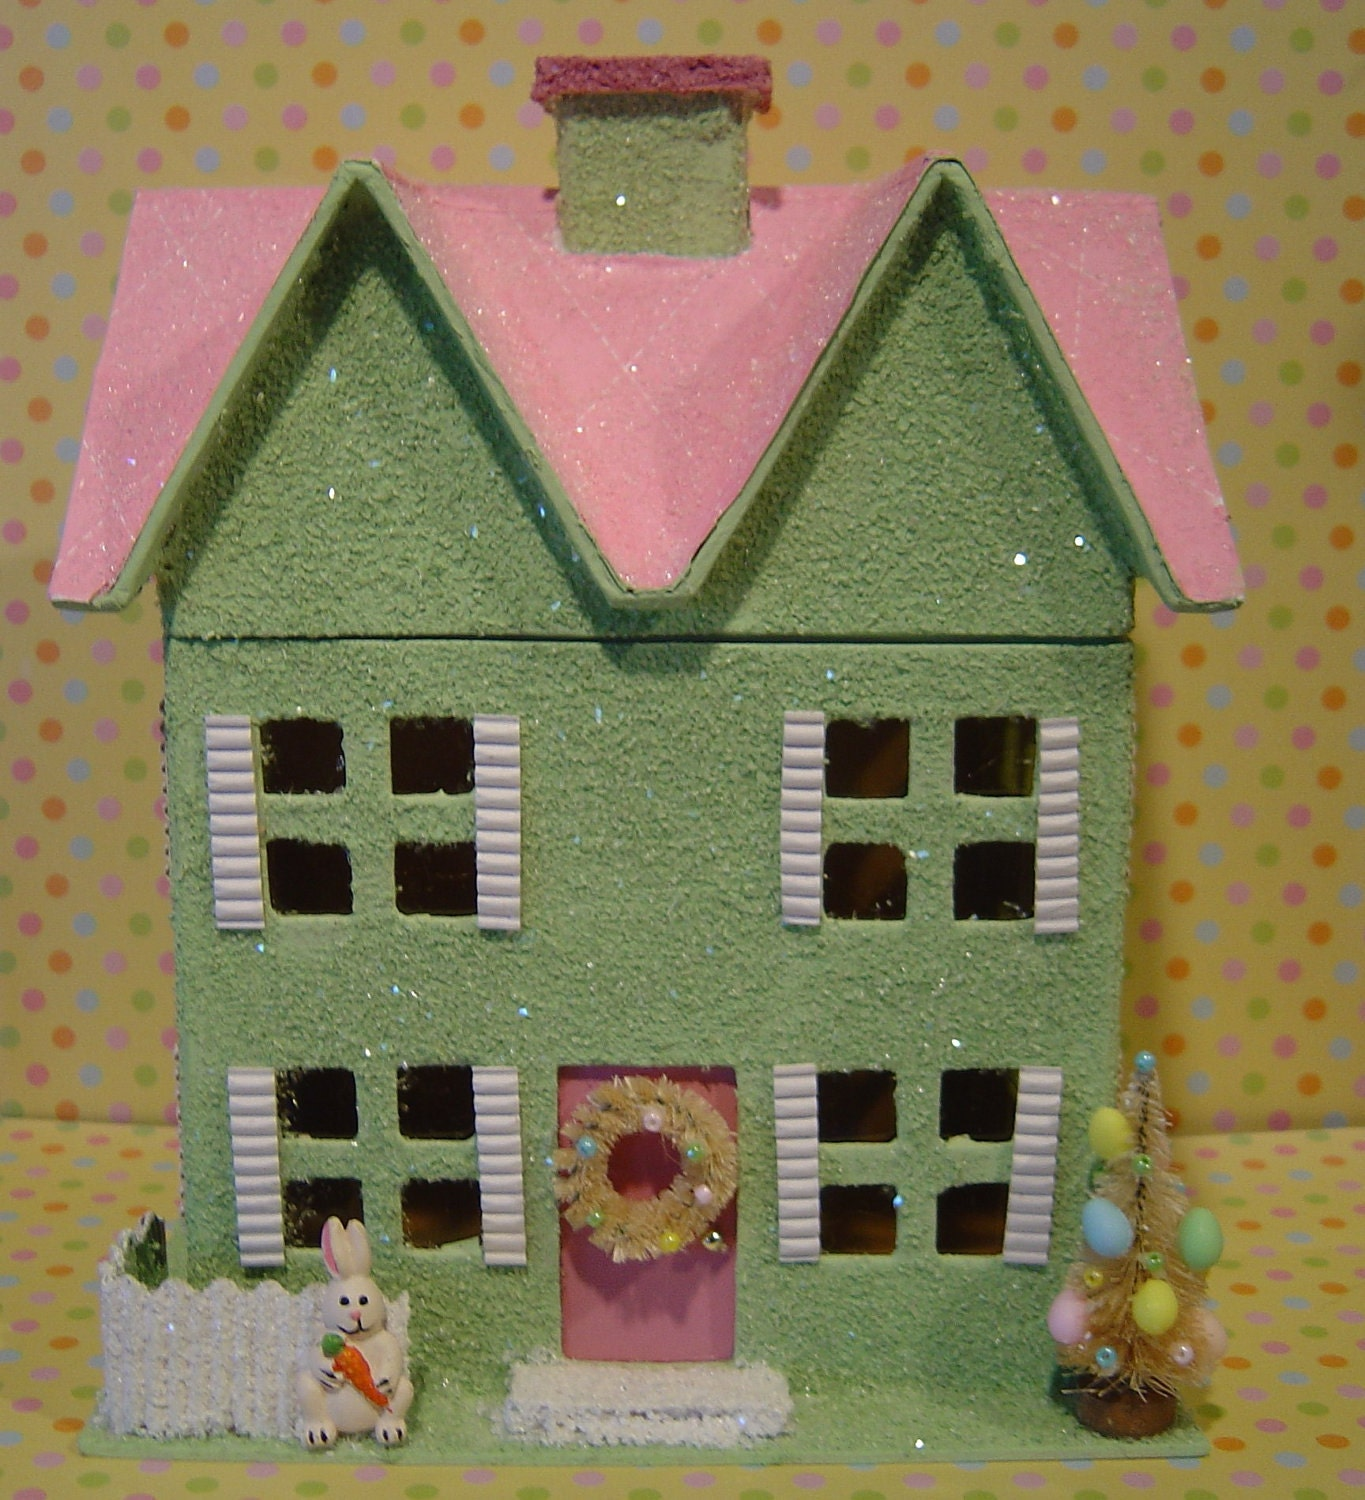 Paper Mache Pastel Easter Glitter House 9 Inch